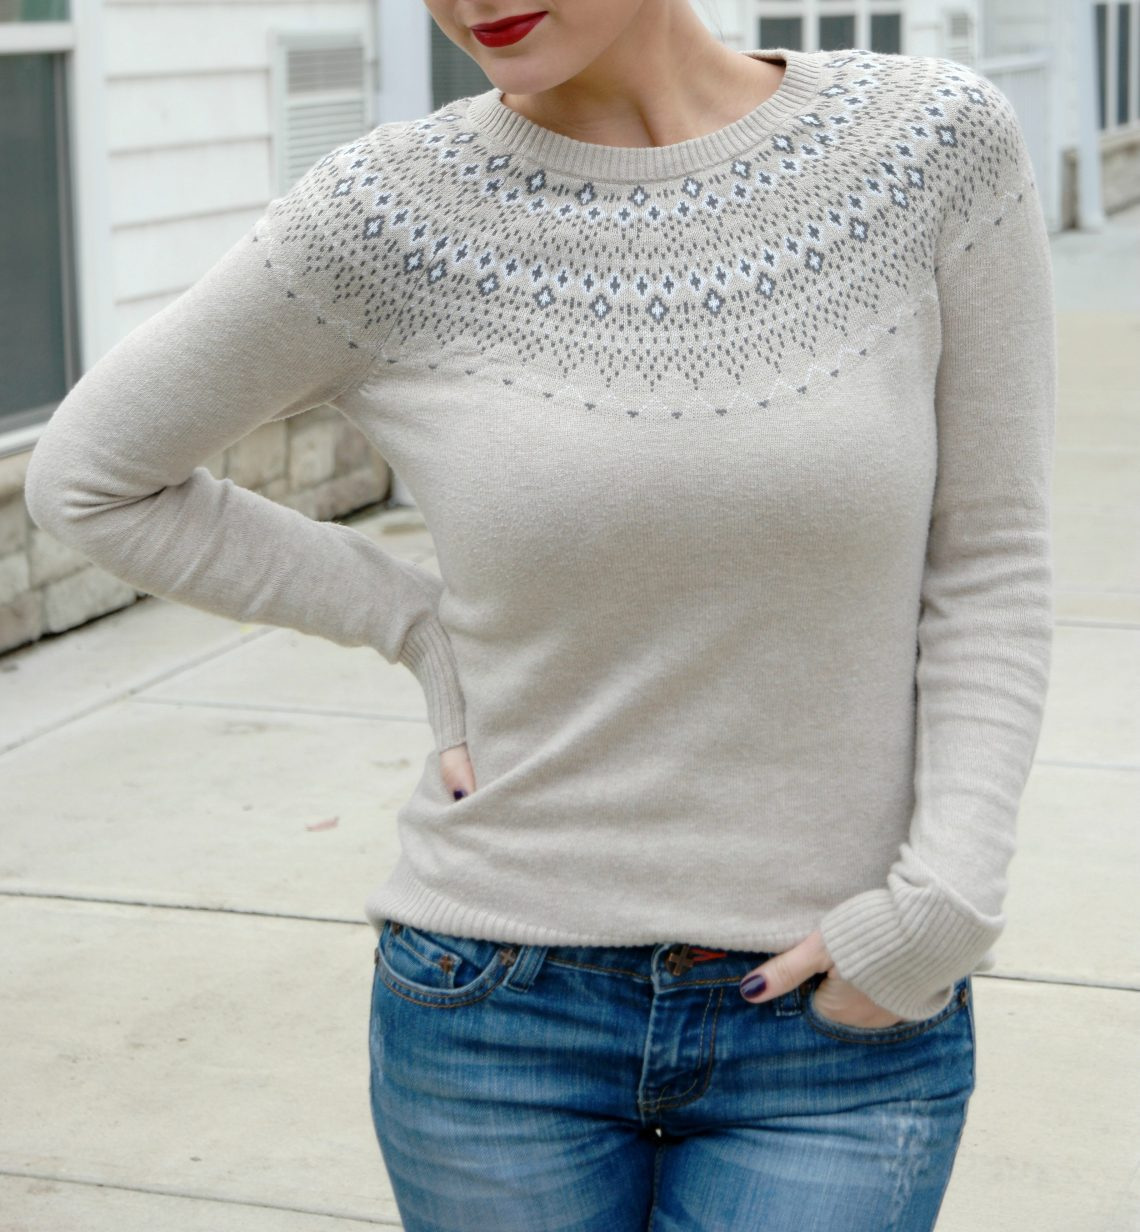 target pullover sweater